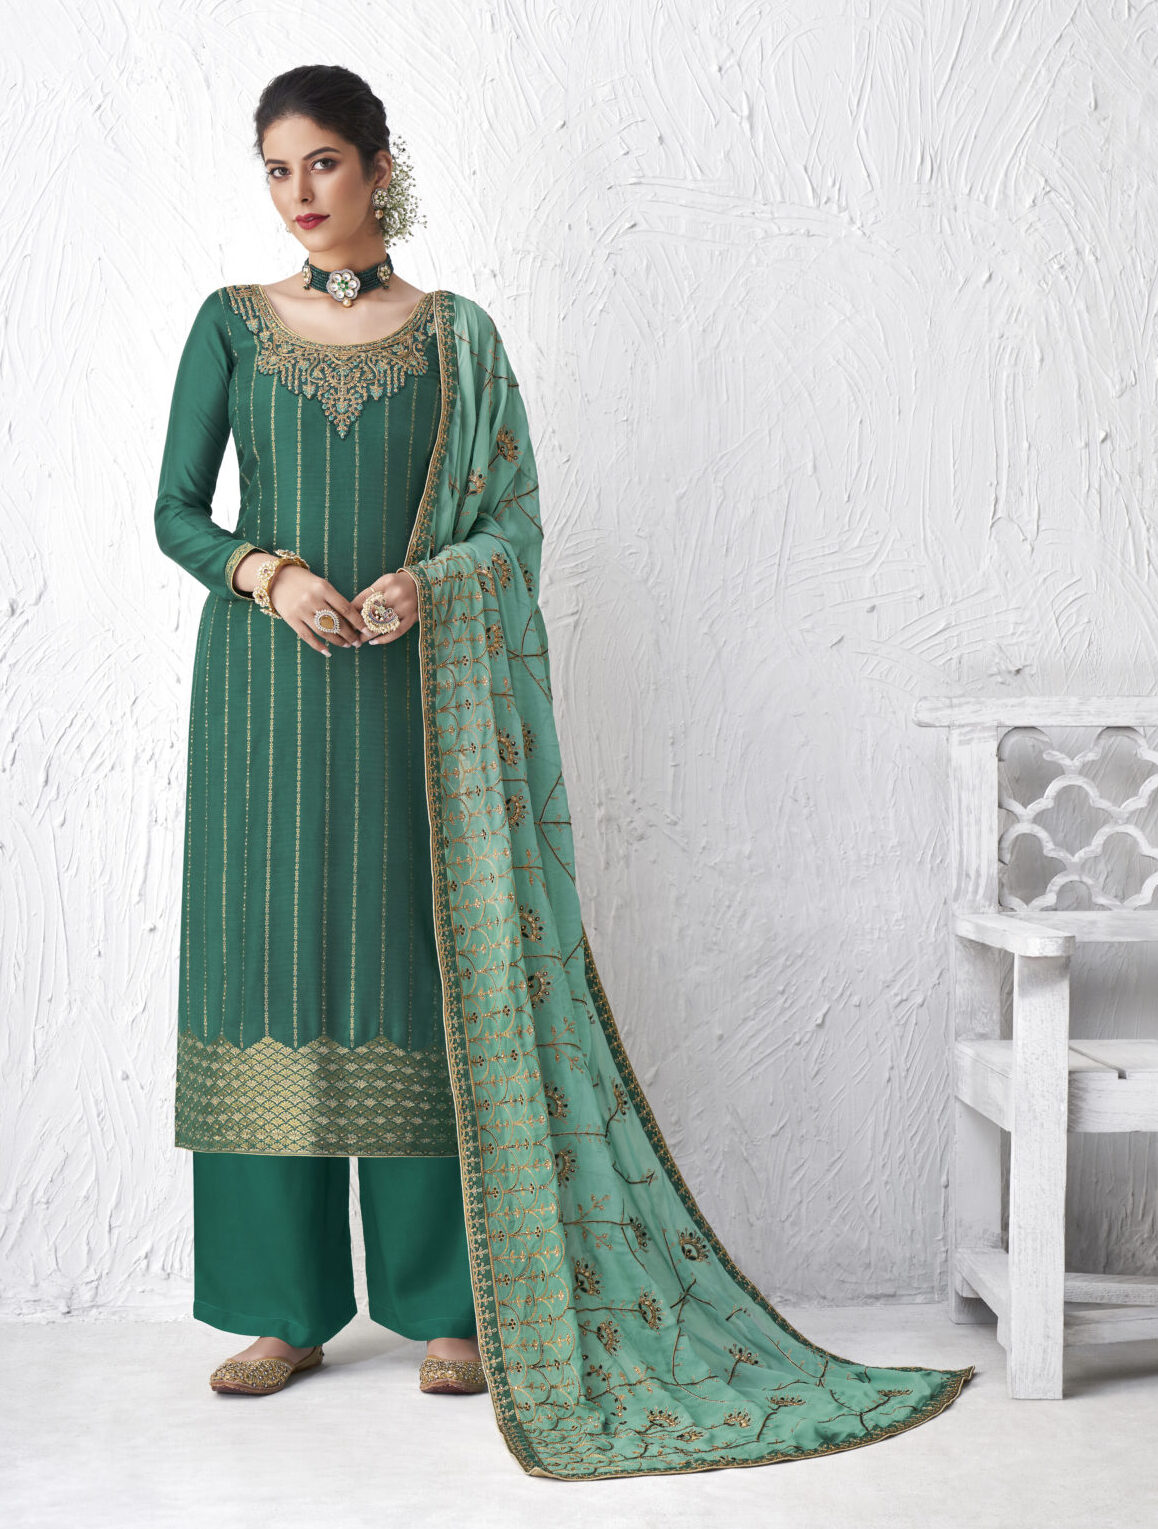 Green Colour Bridal Suits with Heavy Dupatta